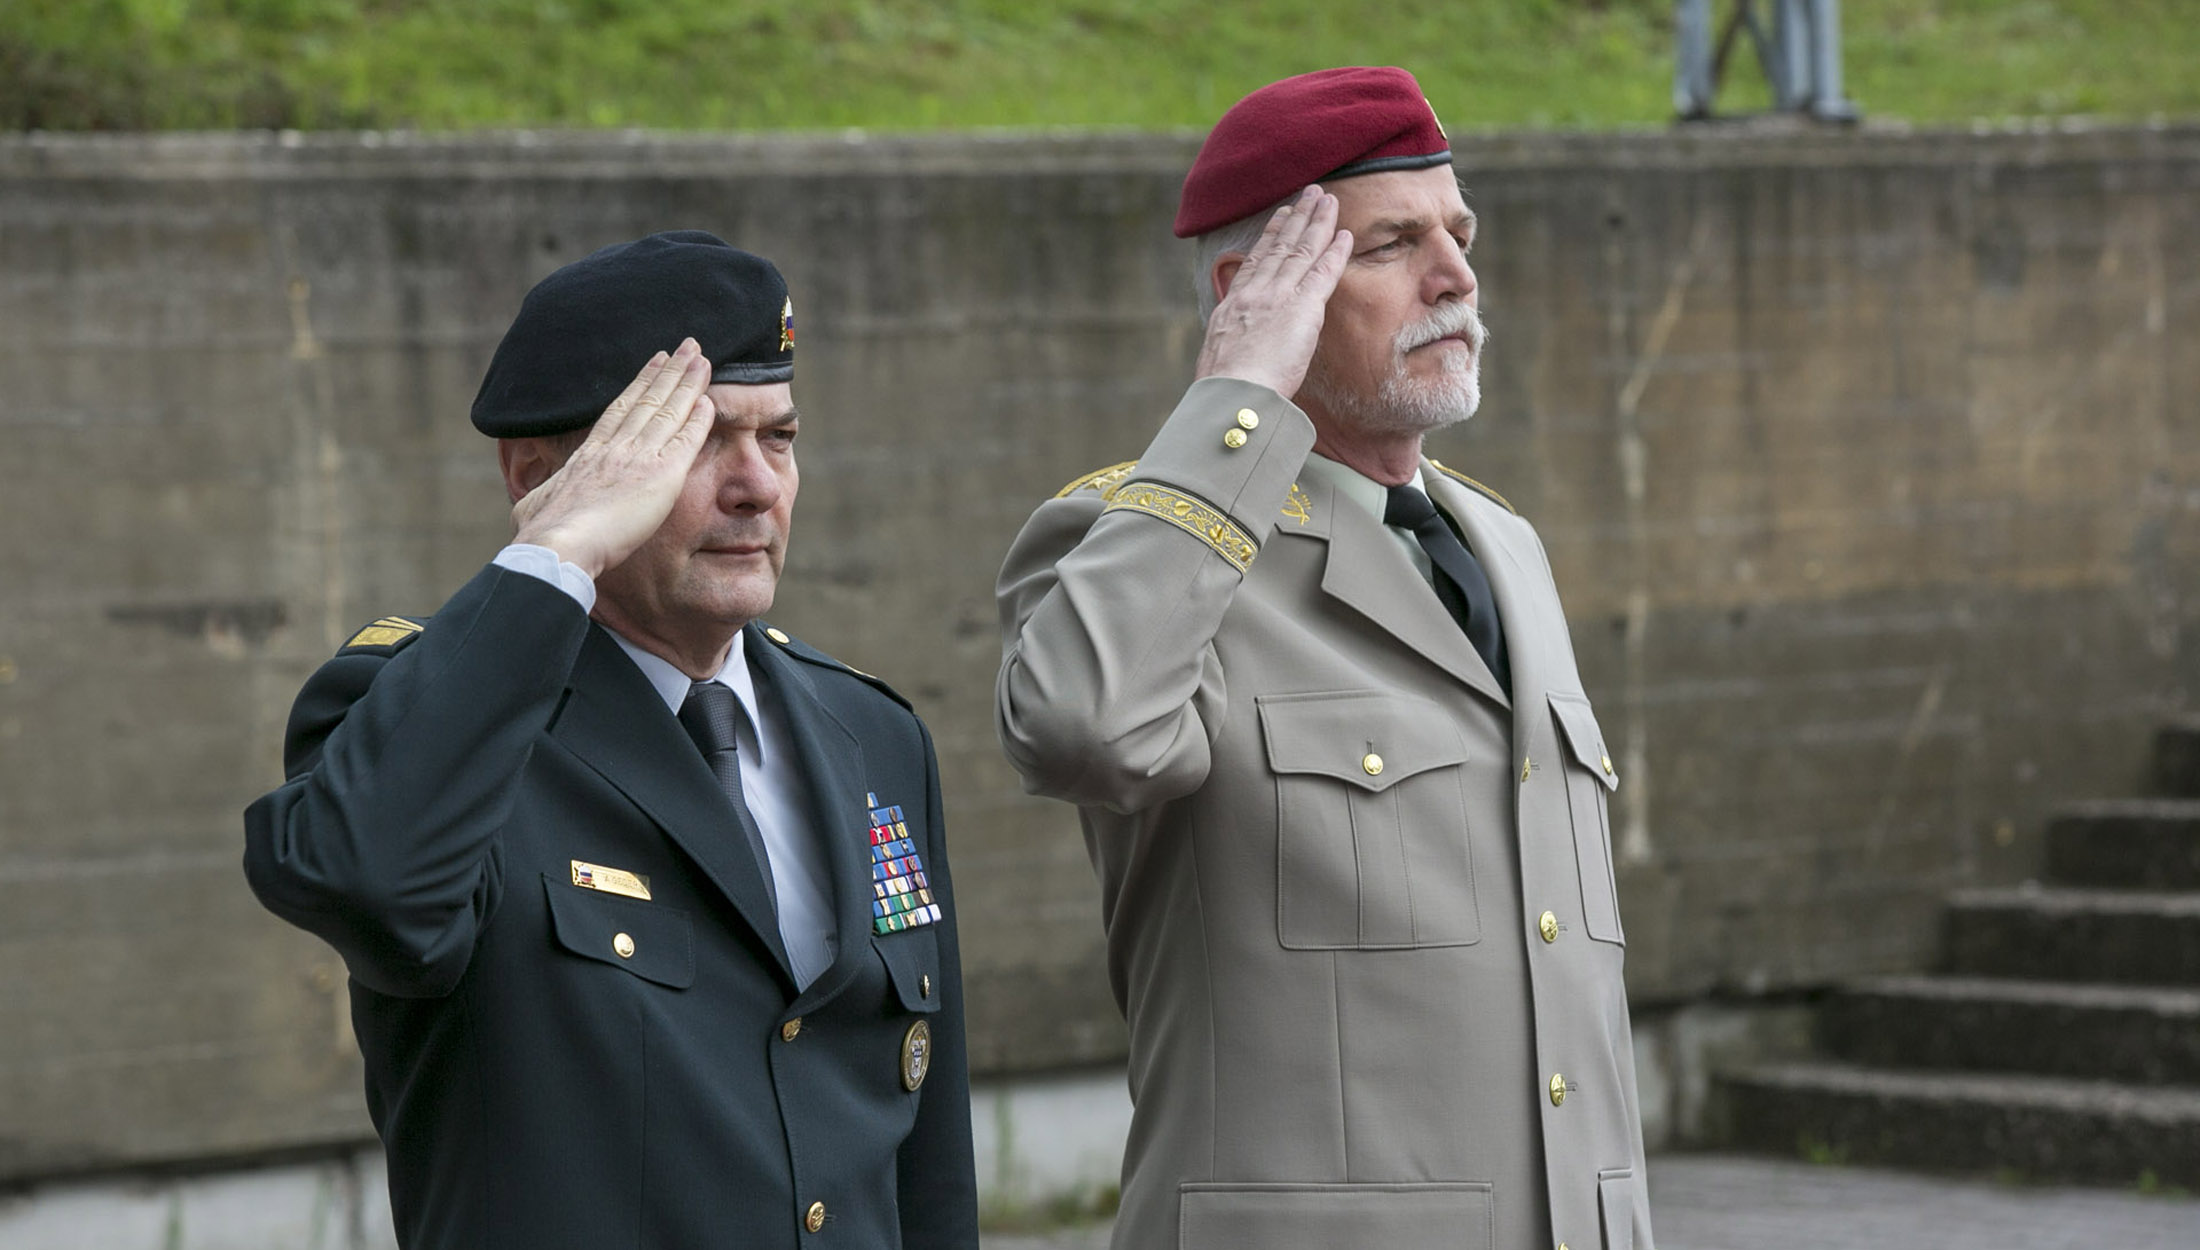 NATO - Photo gallery: Chairman of the NATO Military Committee visits